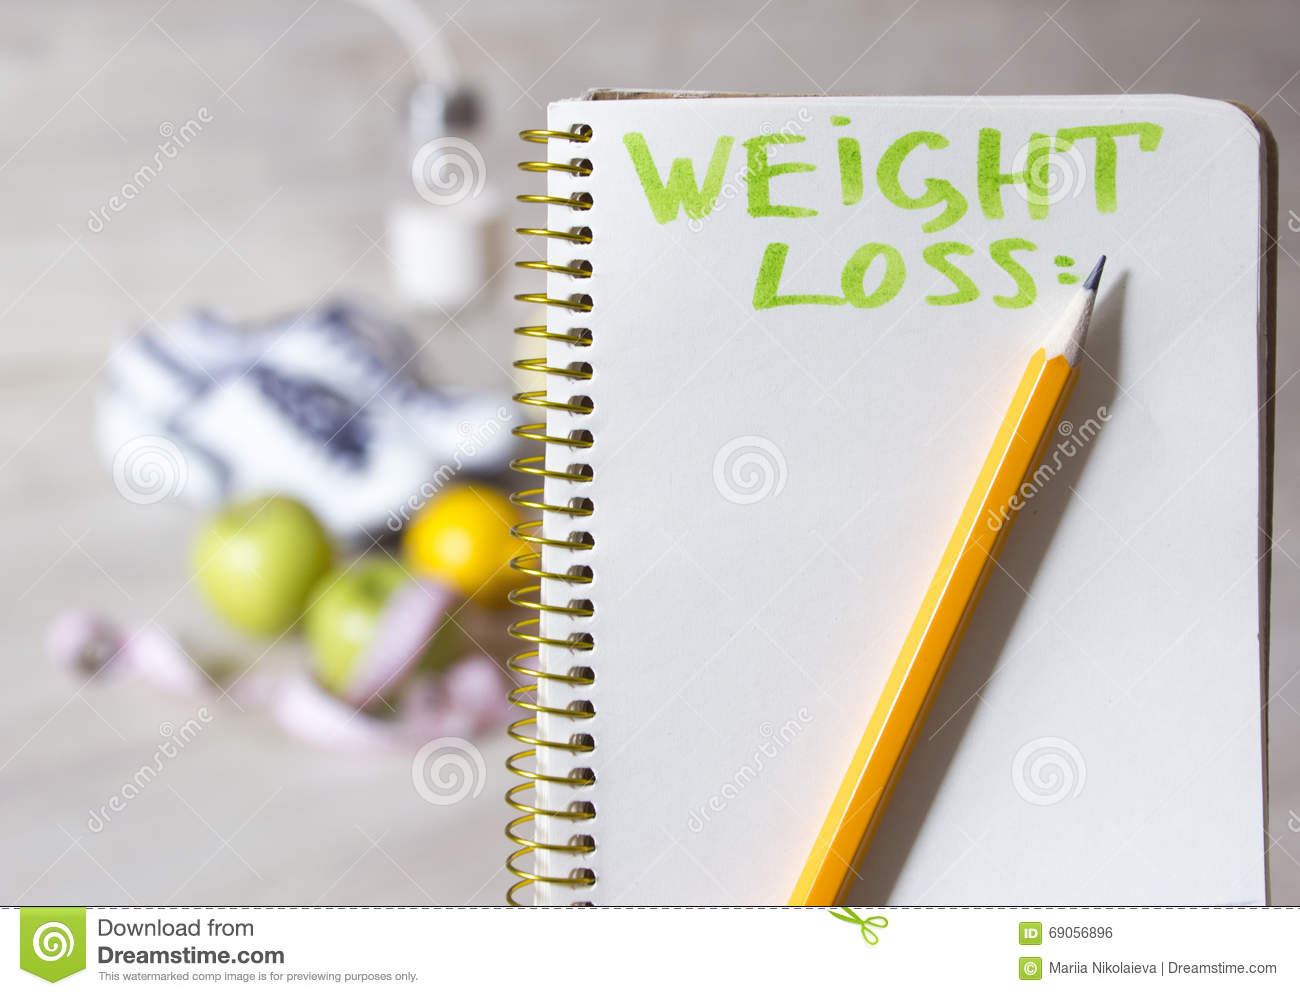 thesis for weight loss Fad diets essaysfad diets: are they a safe method of losing weight fad diets are not a safe way to efficiently loss weight obesity is something that has plagued the american culture for centuries.